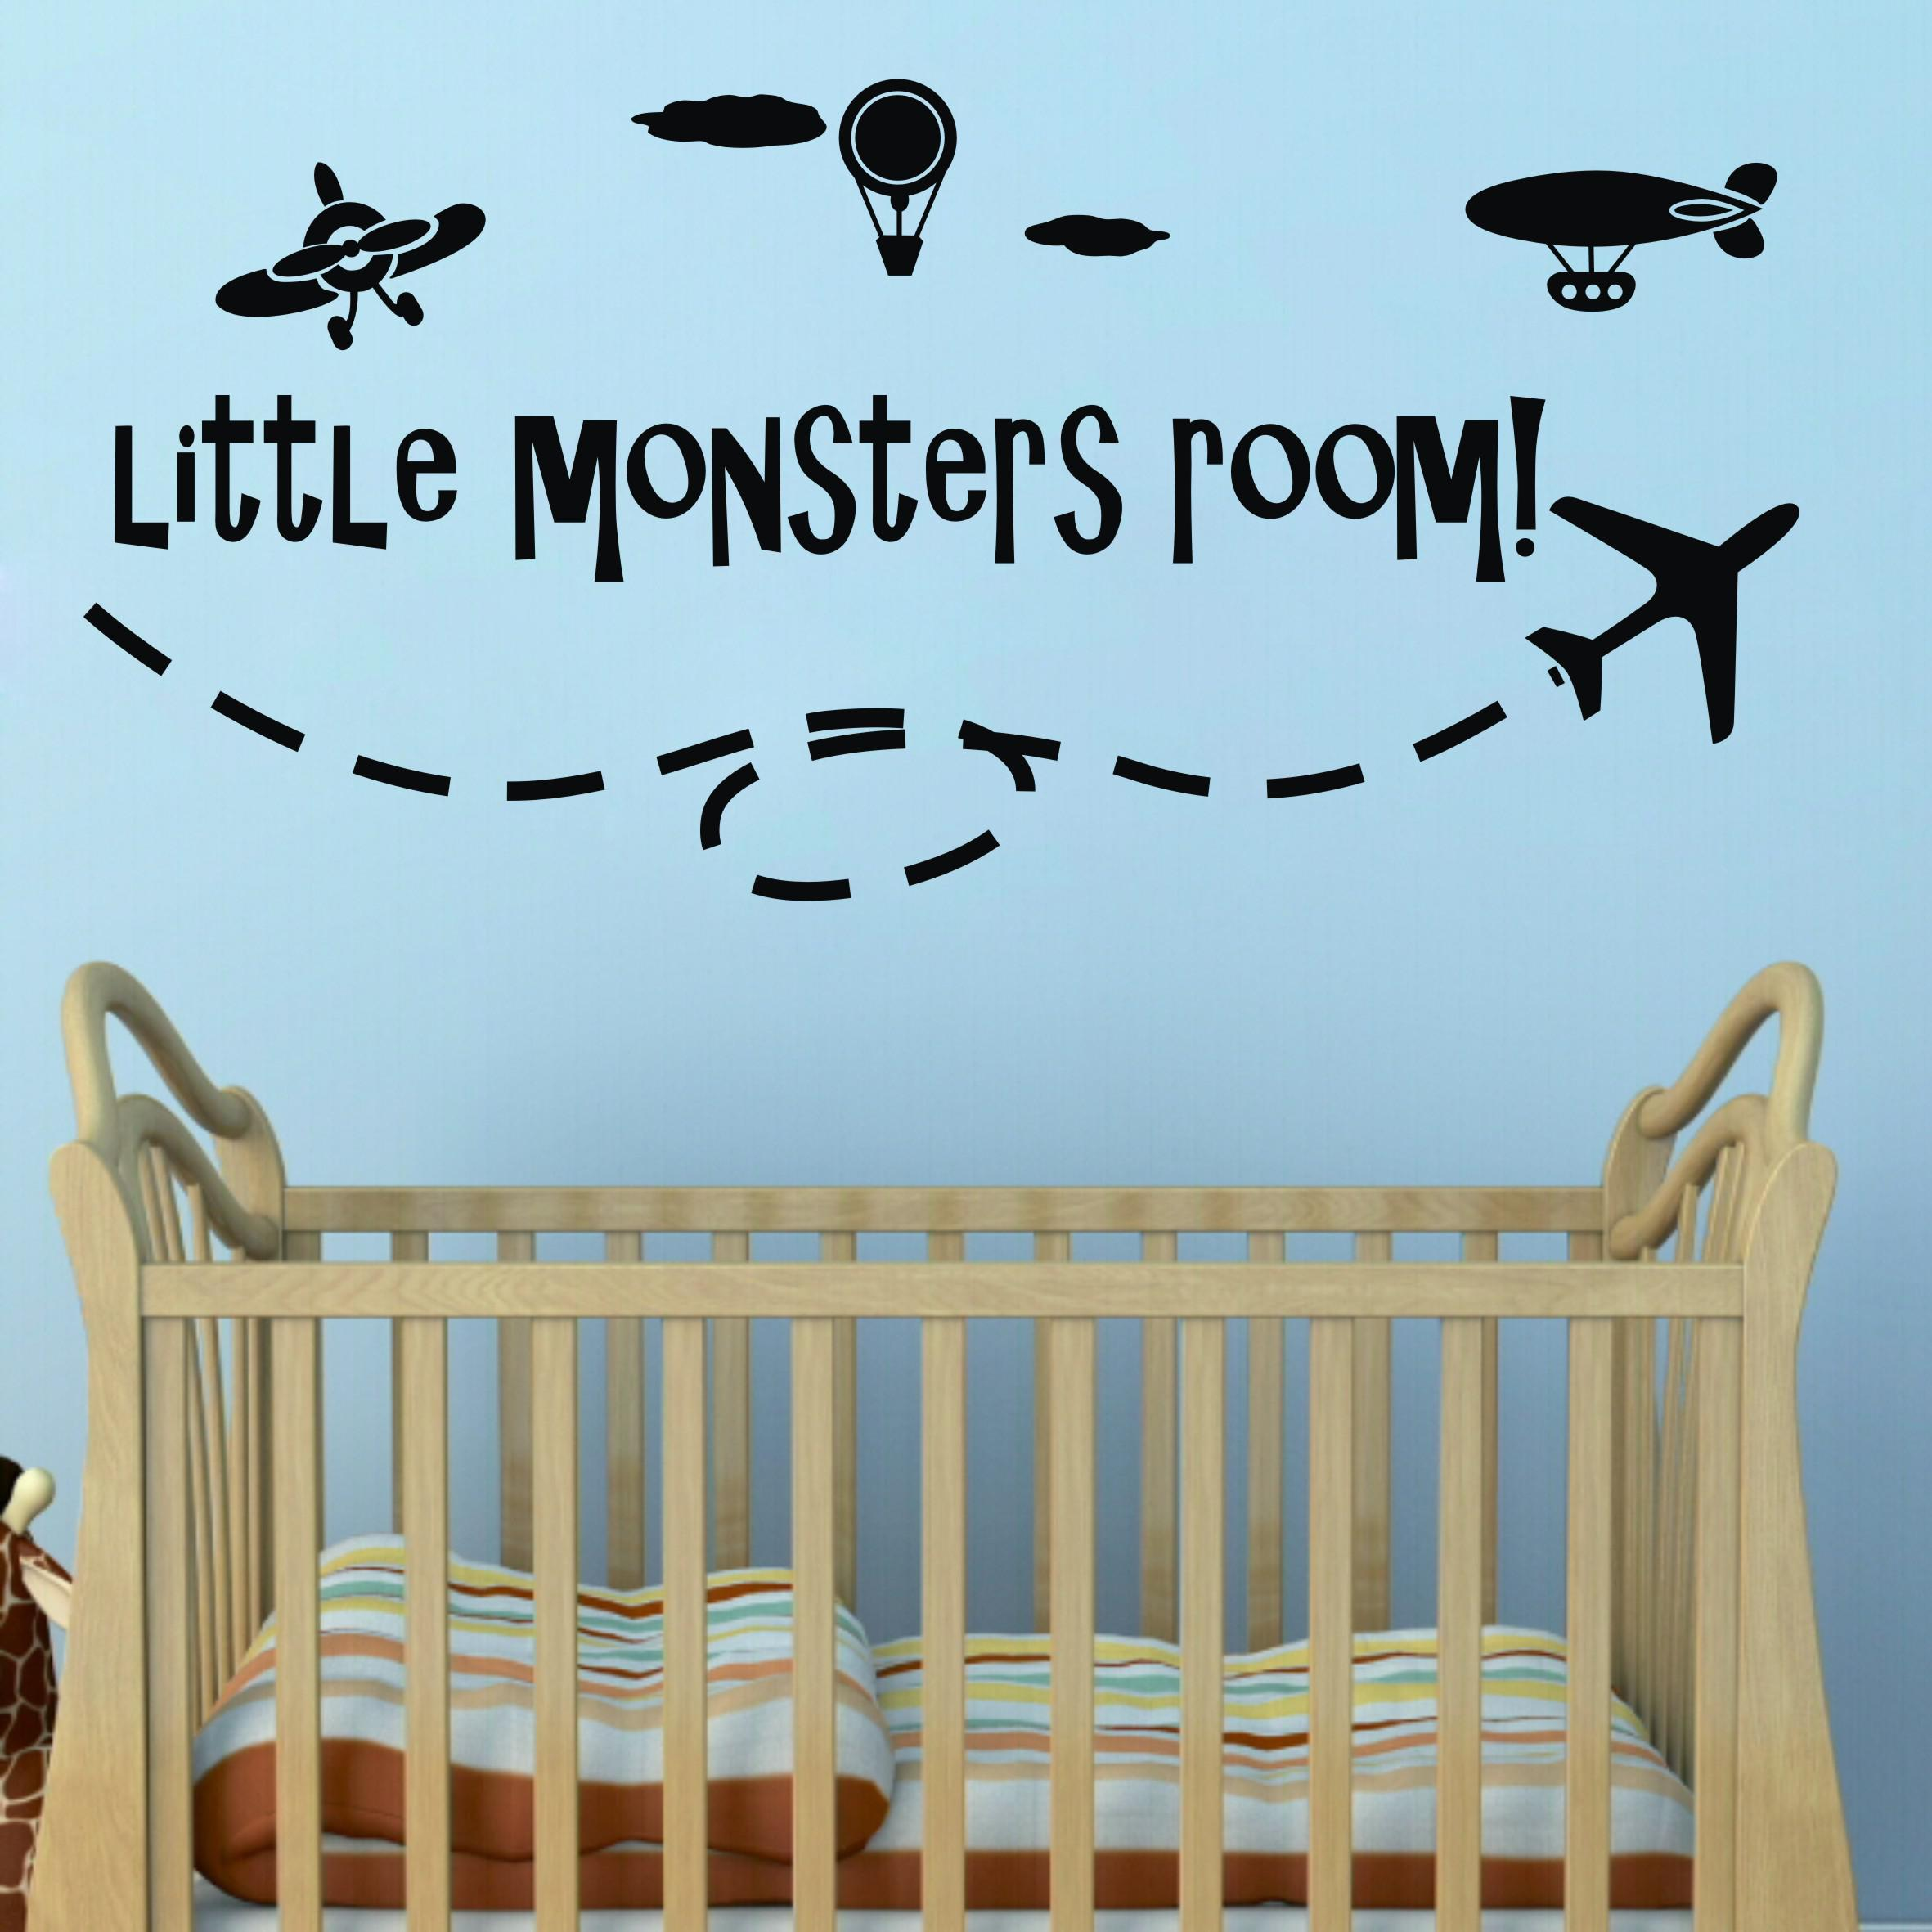 little monster wall quote decal nusery boy room lettering saying little monster wall quote decal nusery boy room lettering saying wall art sticker decor